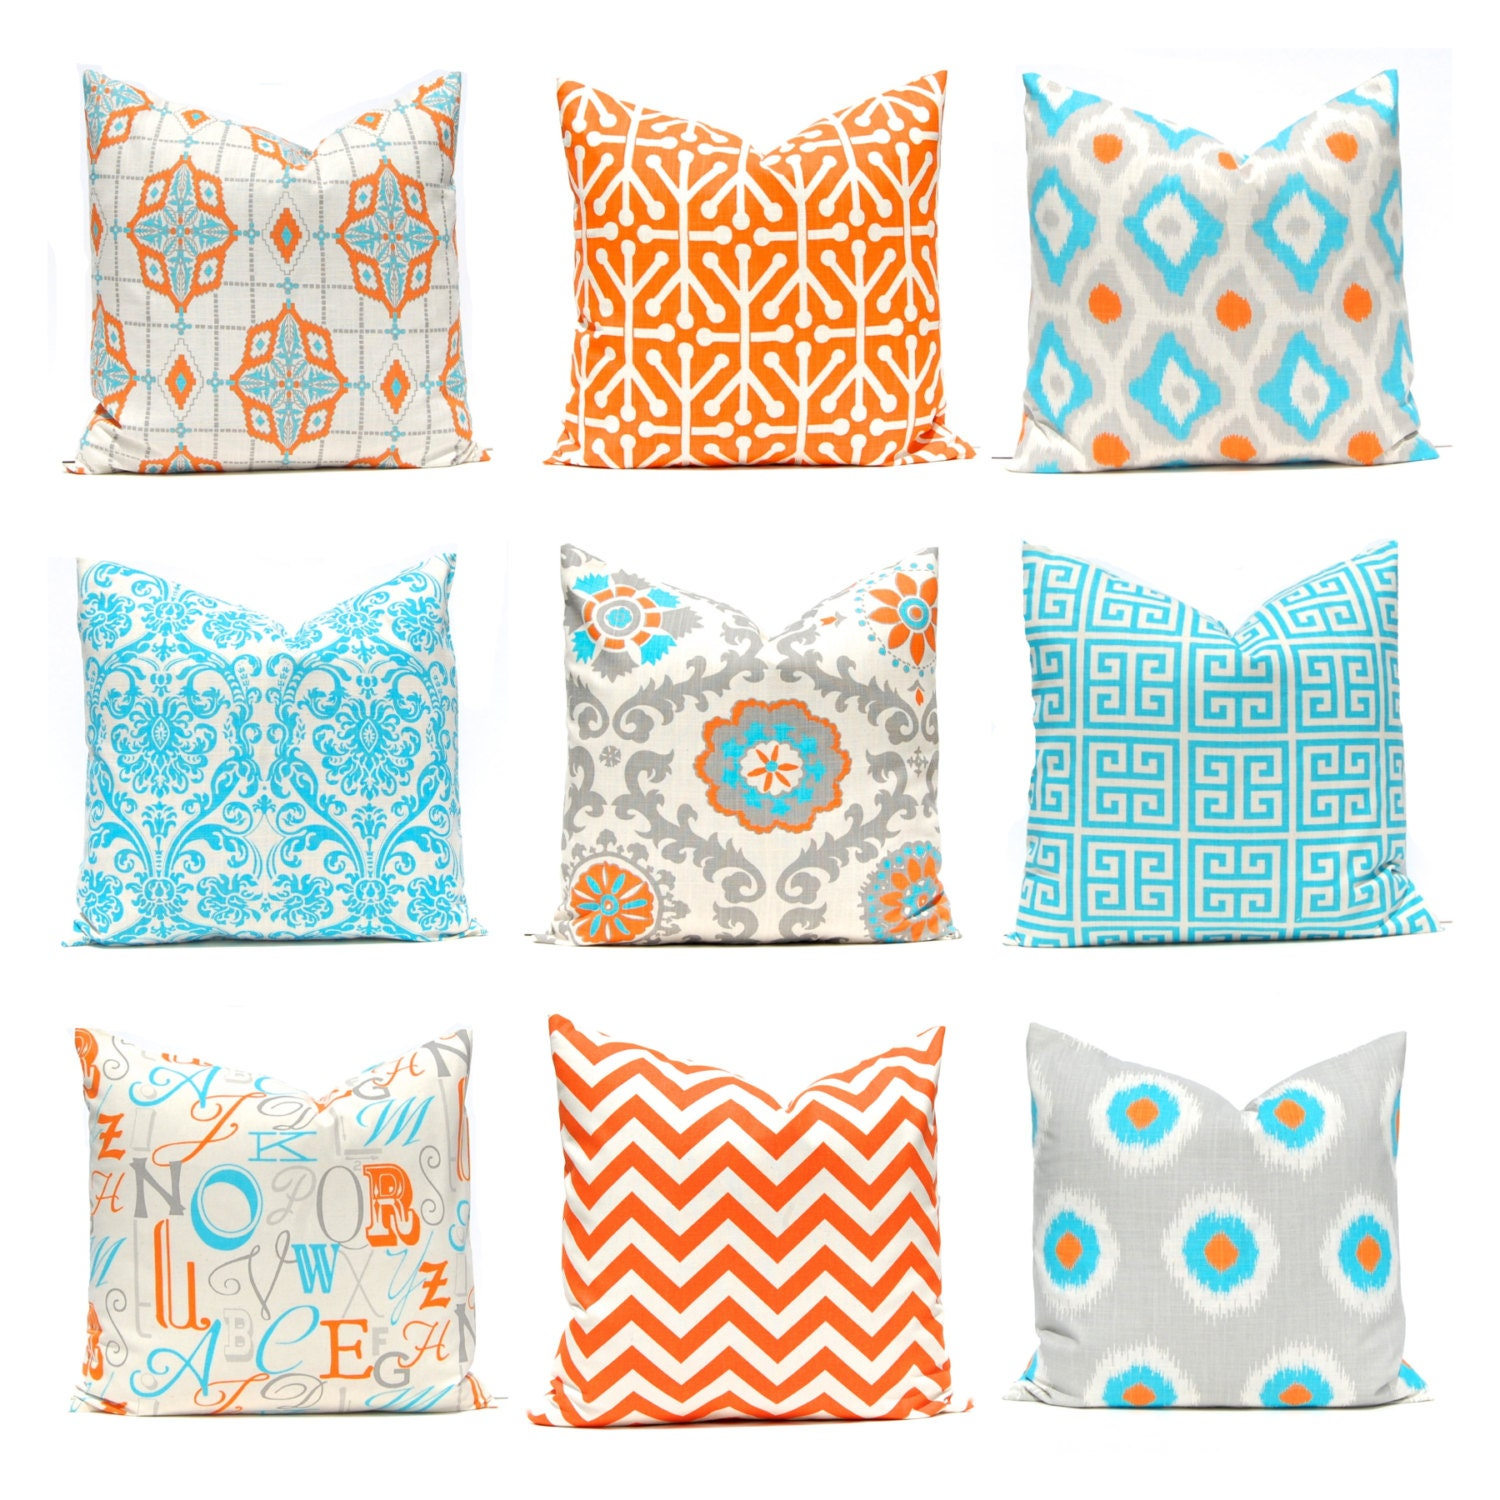 orange turquoise pillows 12 x 16 or 12 x 18 by festivehomedecor. Black Bedroom Furniture Sets. Home Design Ideas